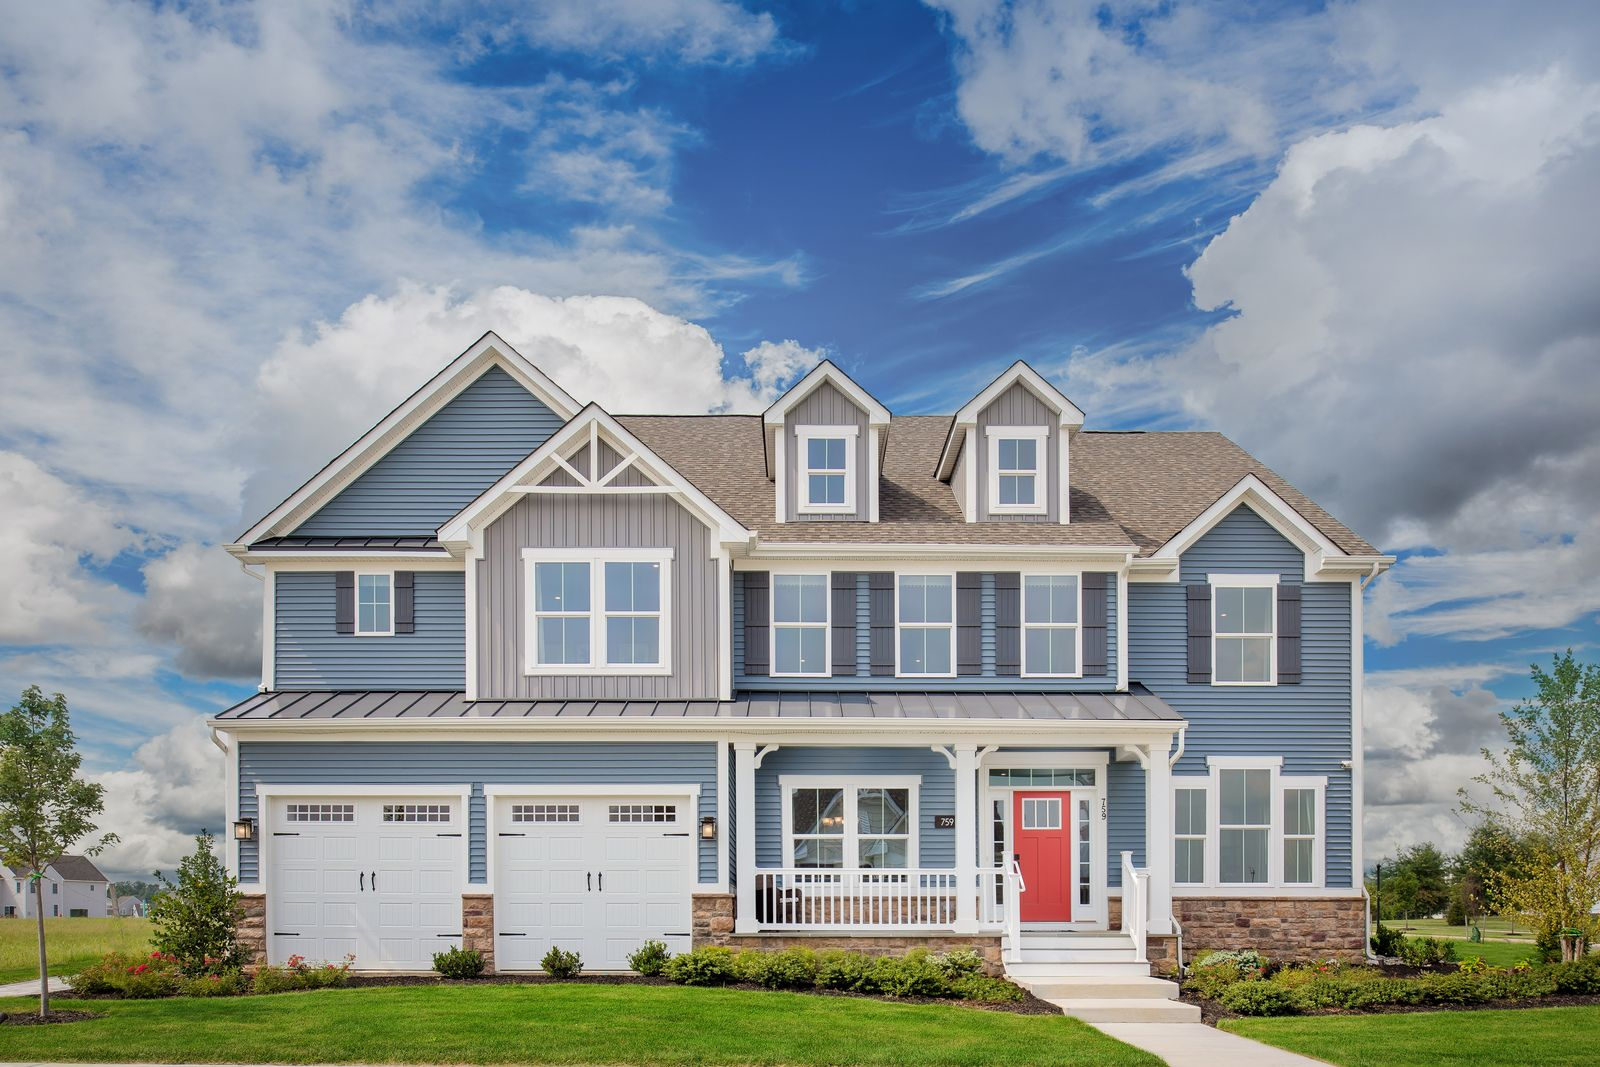 CROSSLAND AT THE CANAL:The only new homes in Northern Middletown offering luxury features and backing to open space, with a community pool, located for an easy commute.Click here to schedule a visit today!